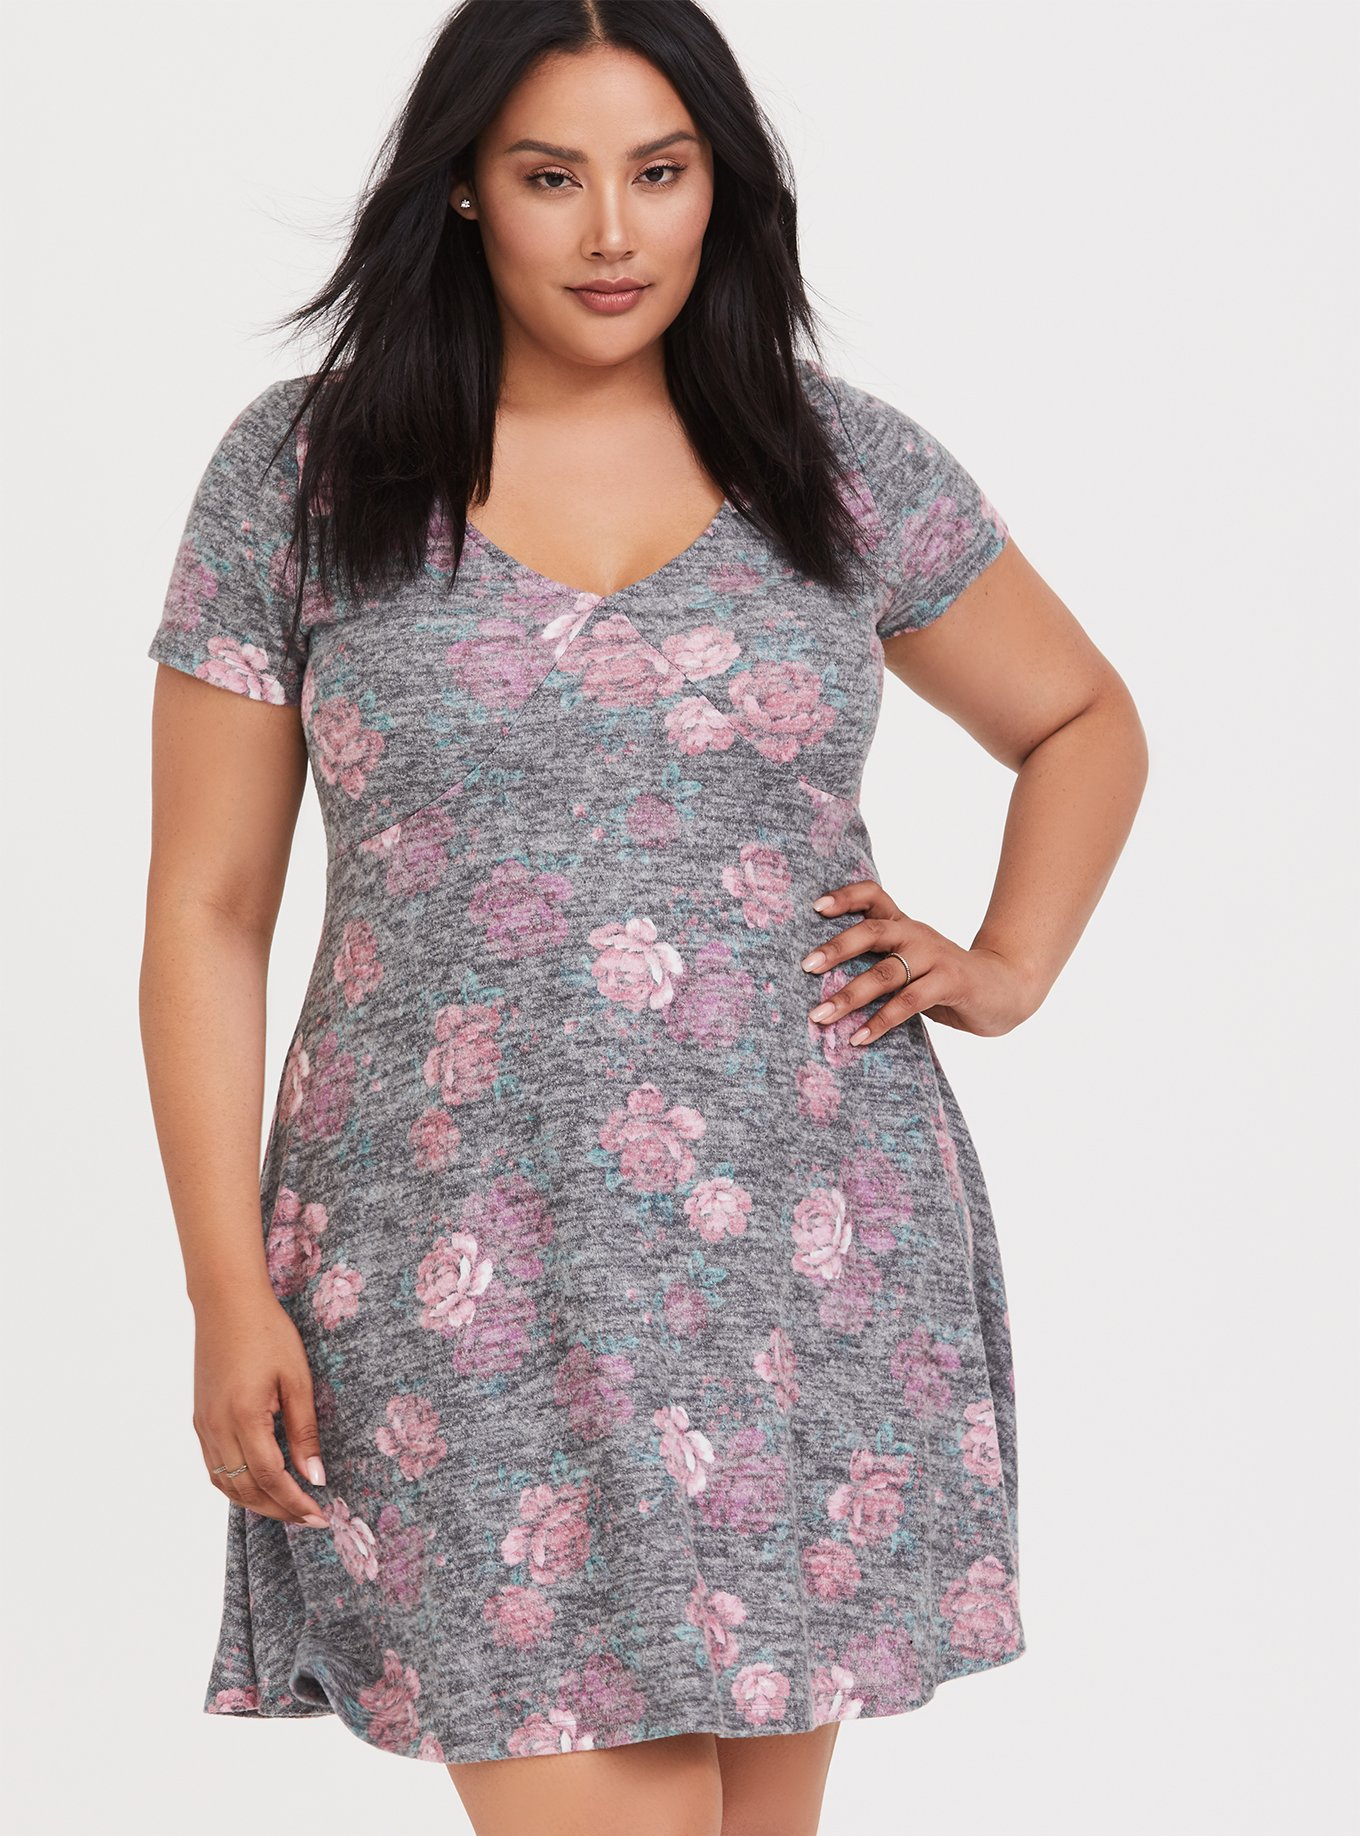 Super Soft Plush Black Floral Skater Dress by Torrid